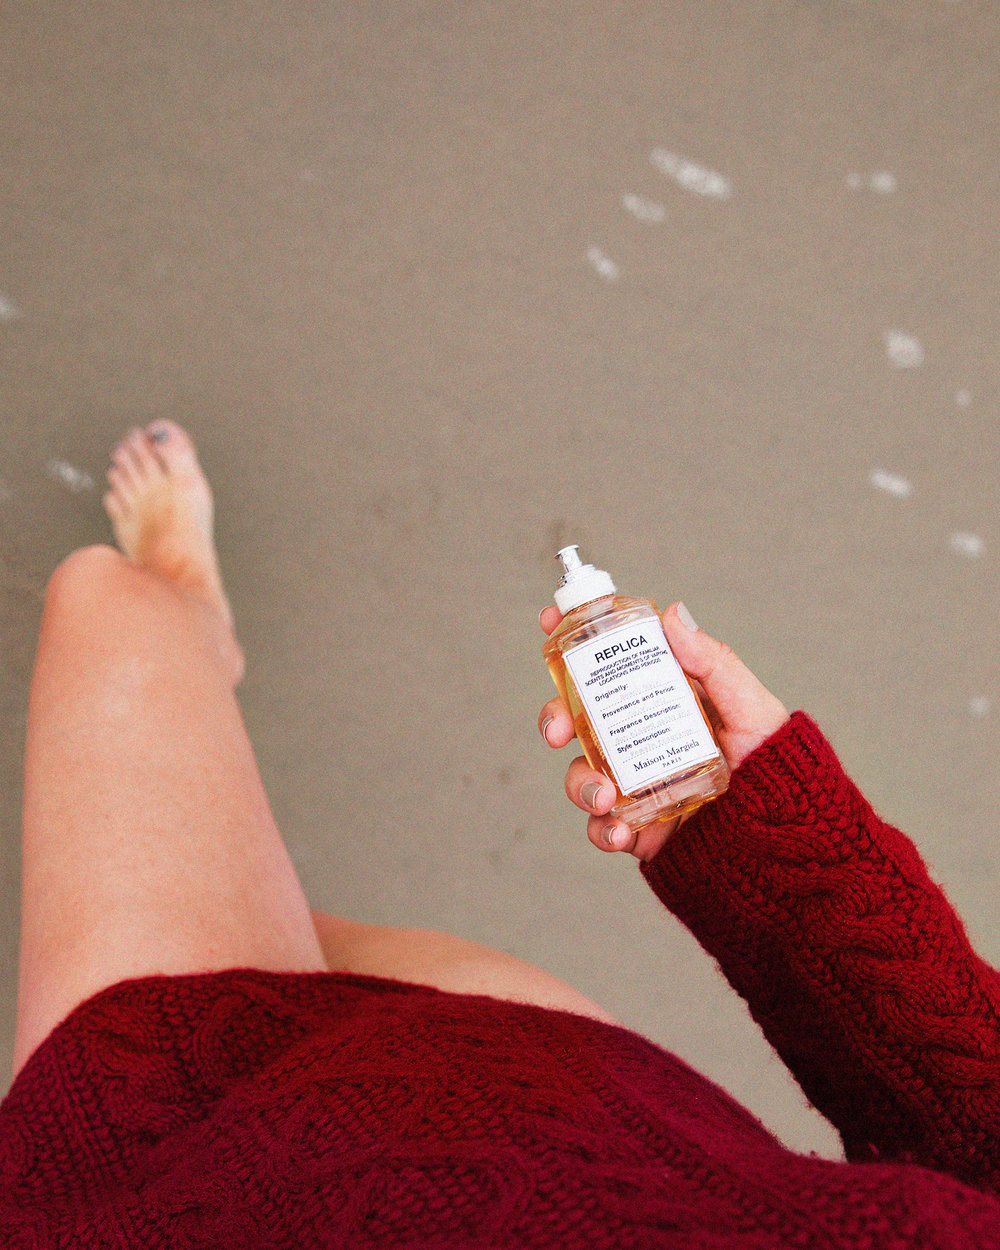 beach walk - reproduction of familiar scents + moments of varying locations + periods